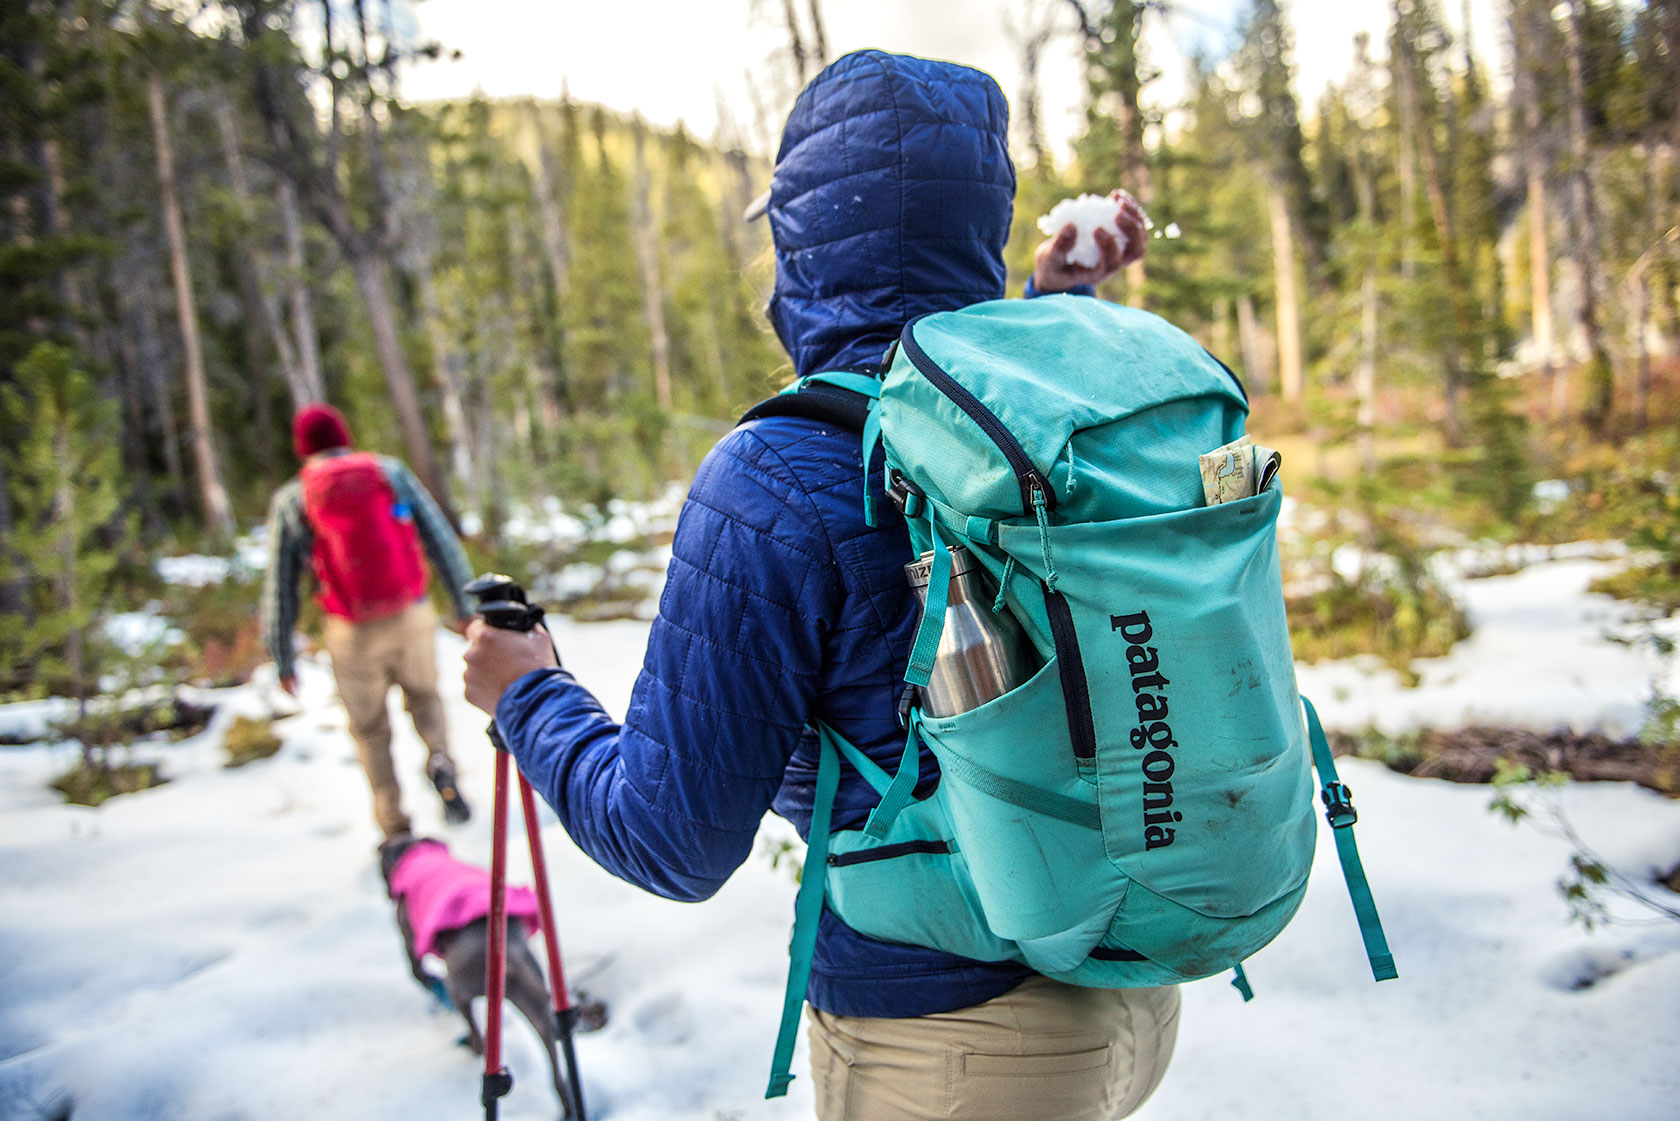 austin-trigg-patagonia-sawtooth-hiking-snowball-fight-bench-lakes-advenure-wilderness-forest-idaho-outside-lifestyle-day-fall-weather-mountains-backpack.jpg